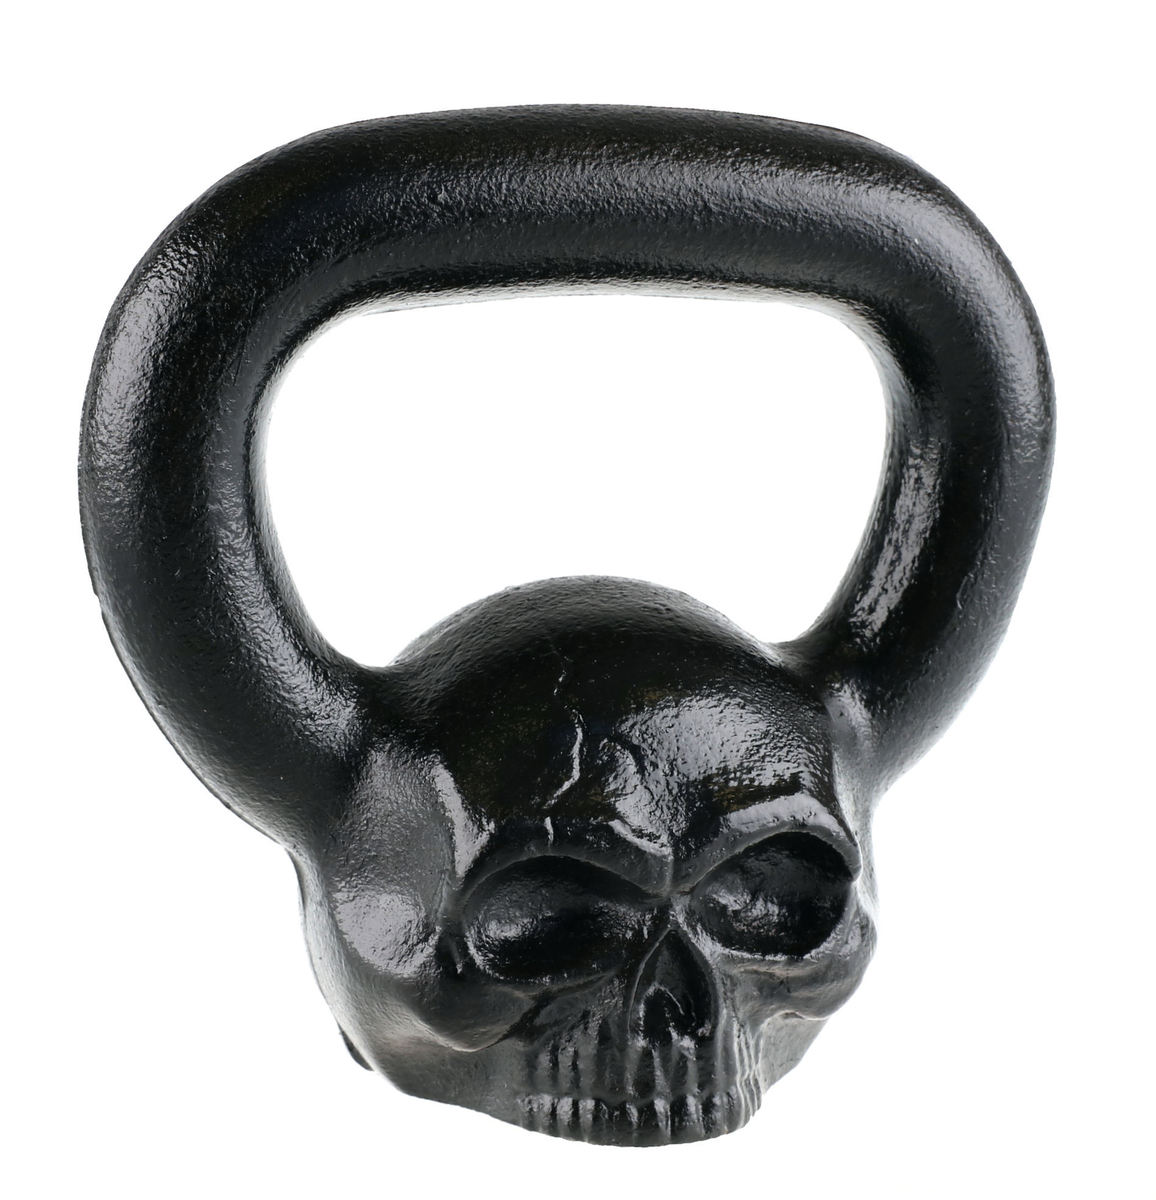 kettlebell Black Skull - MS047